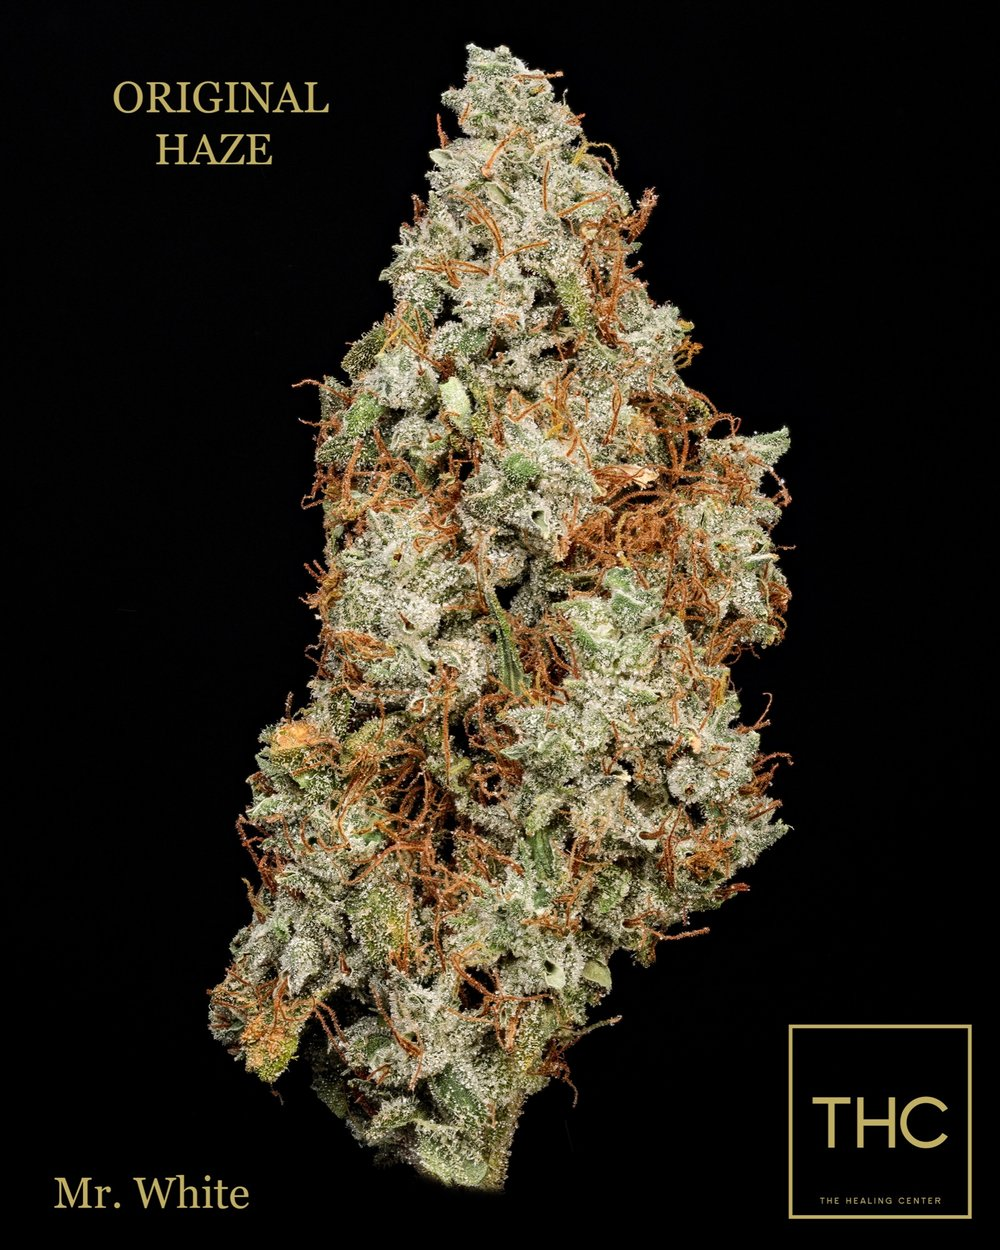 Original Haze Mr. White THC.jpg